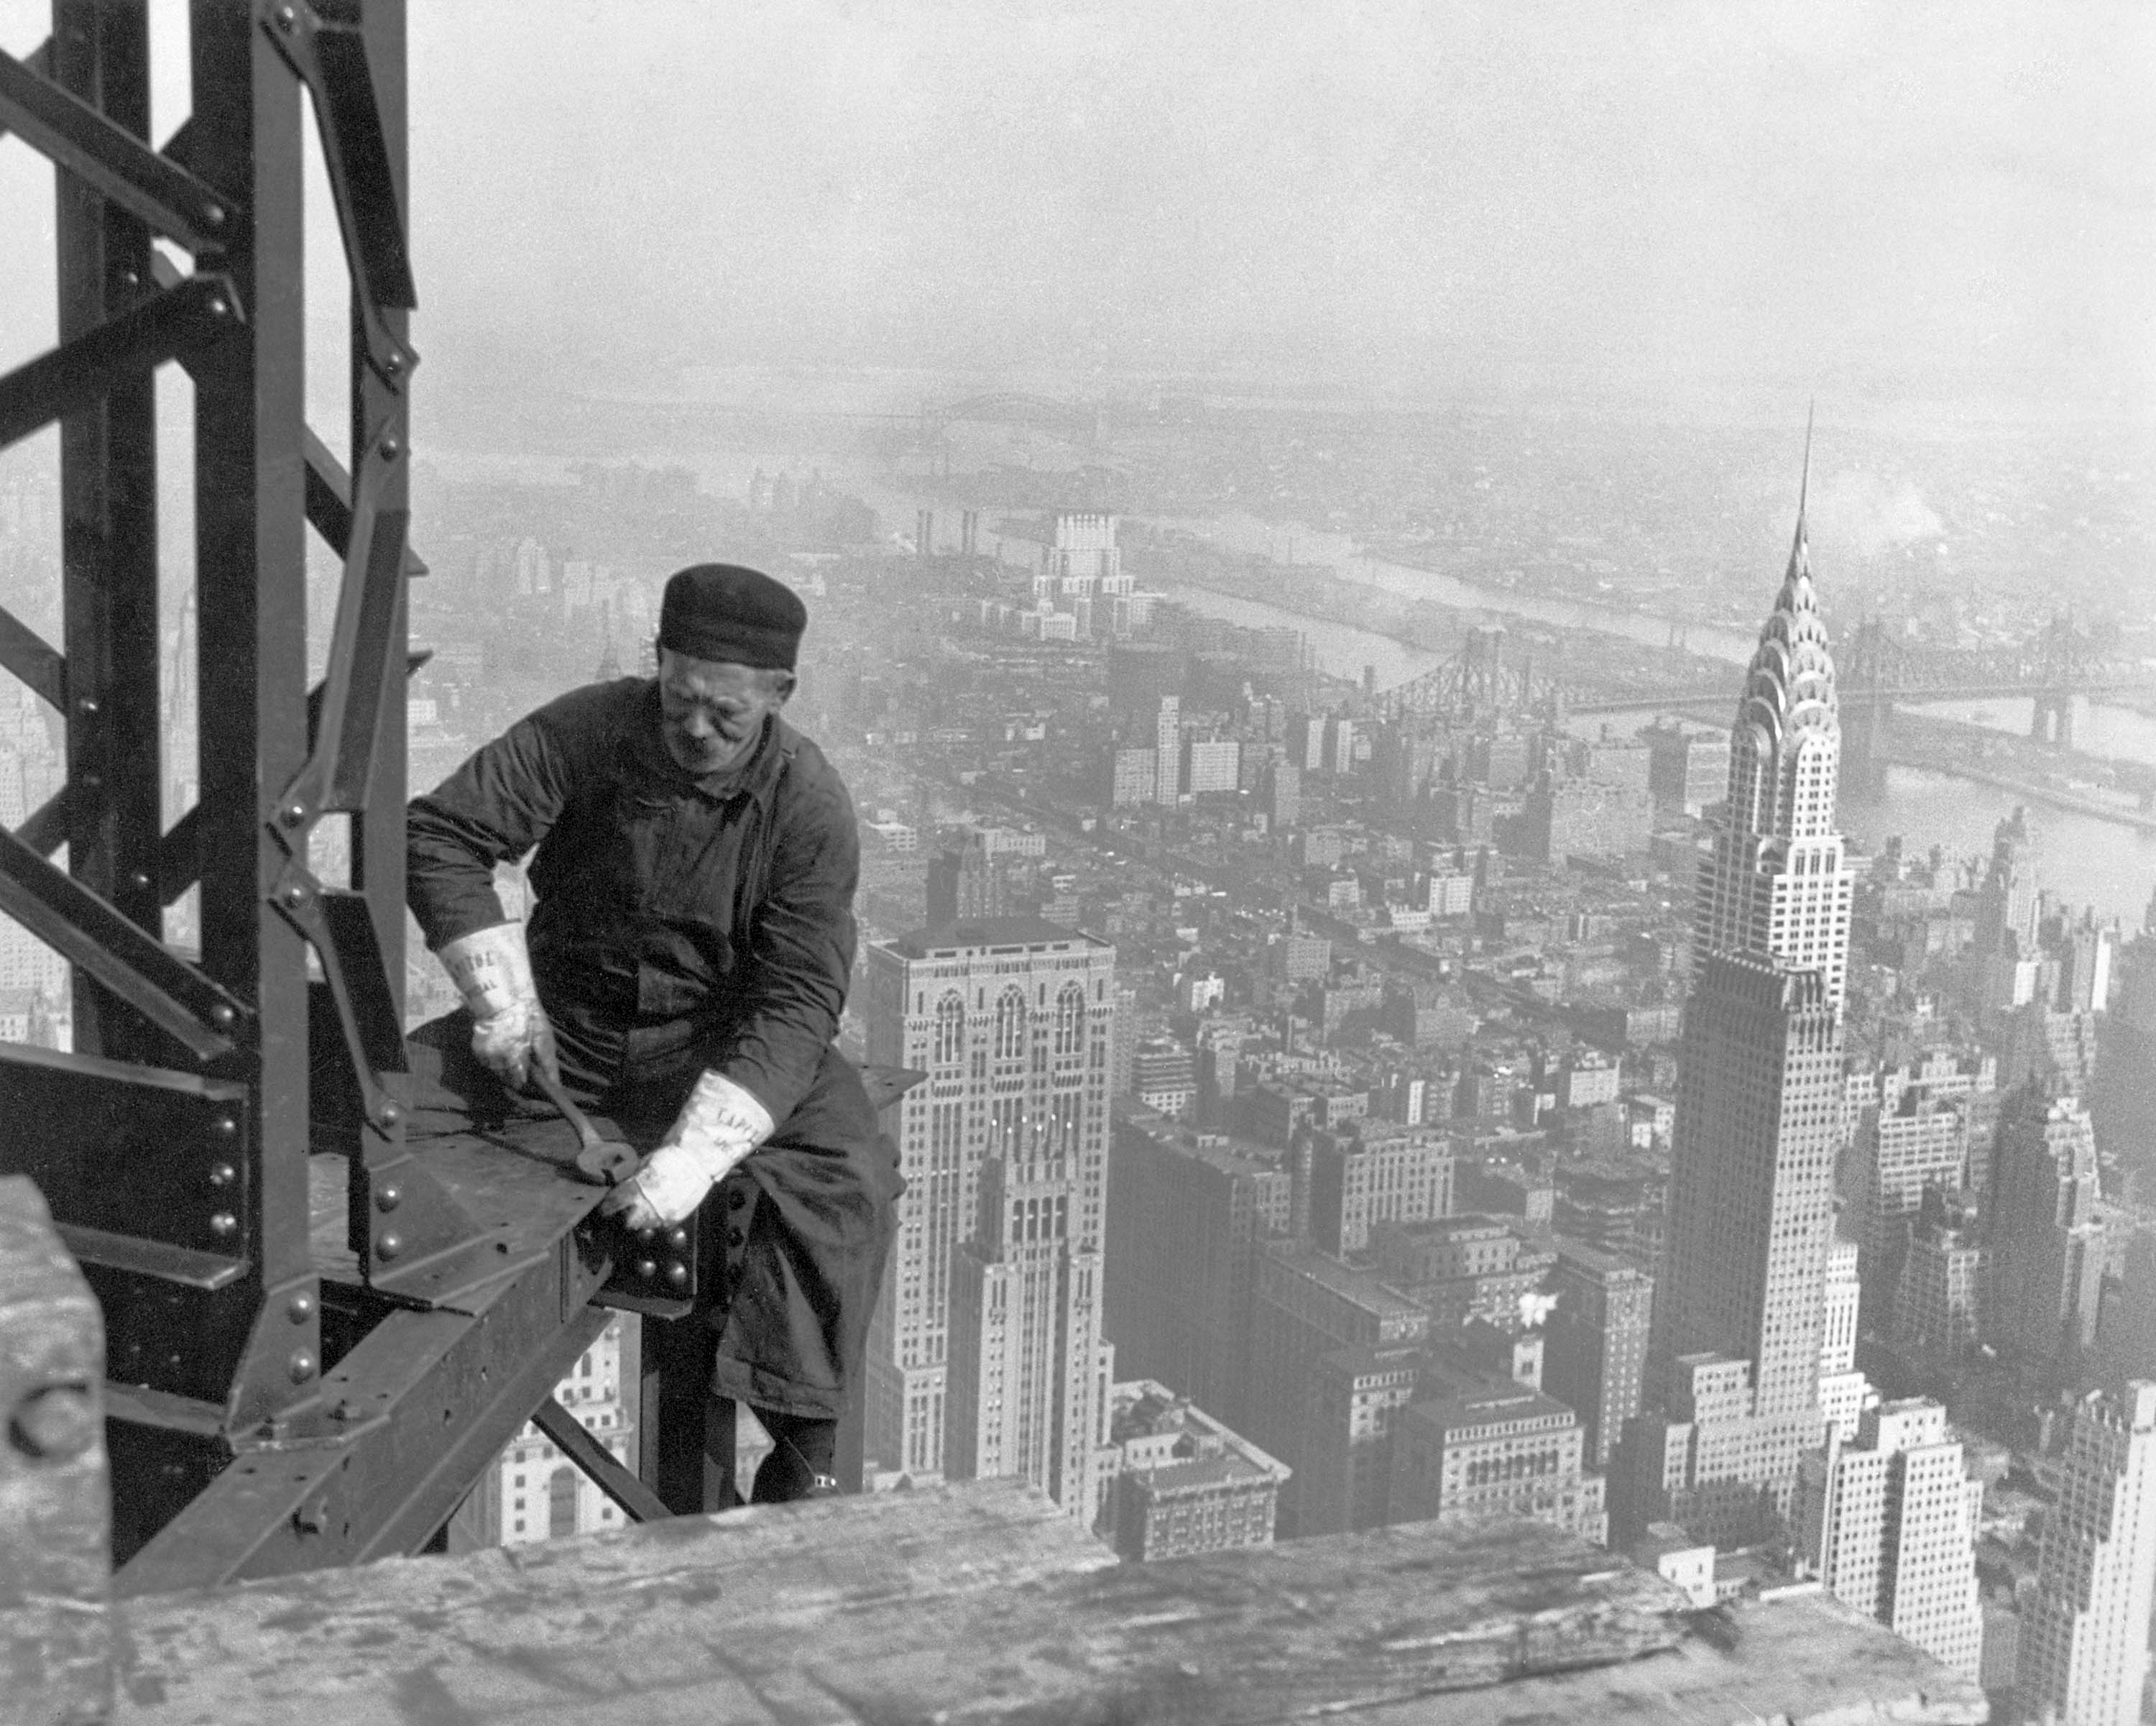 creative-empire-state-building-construction-lewis-hine-on-home-design-with-file-timer-structural-jpg-wikipedia-the-free